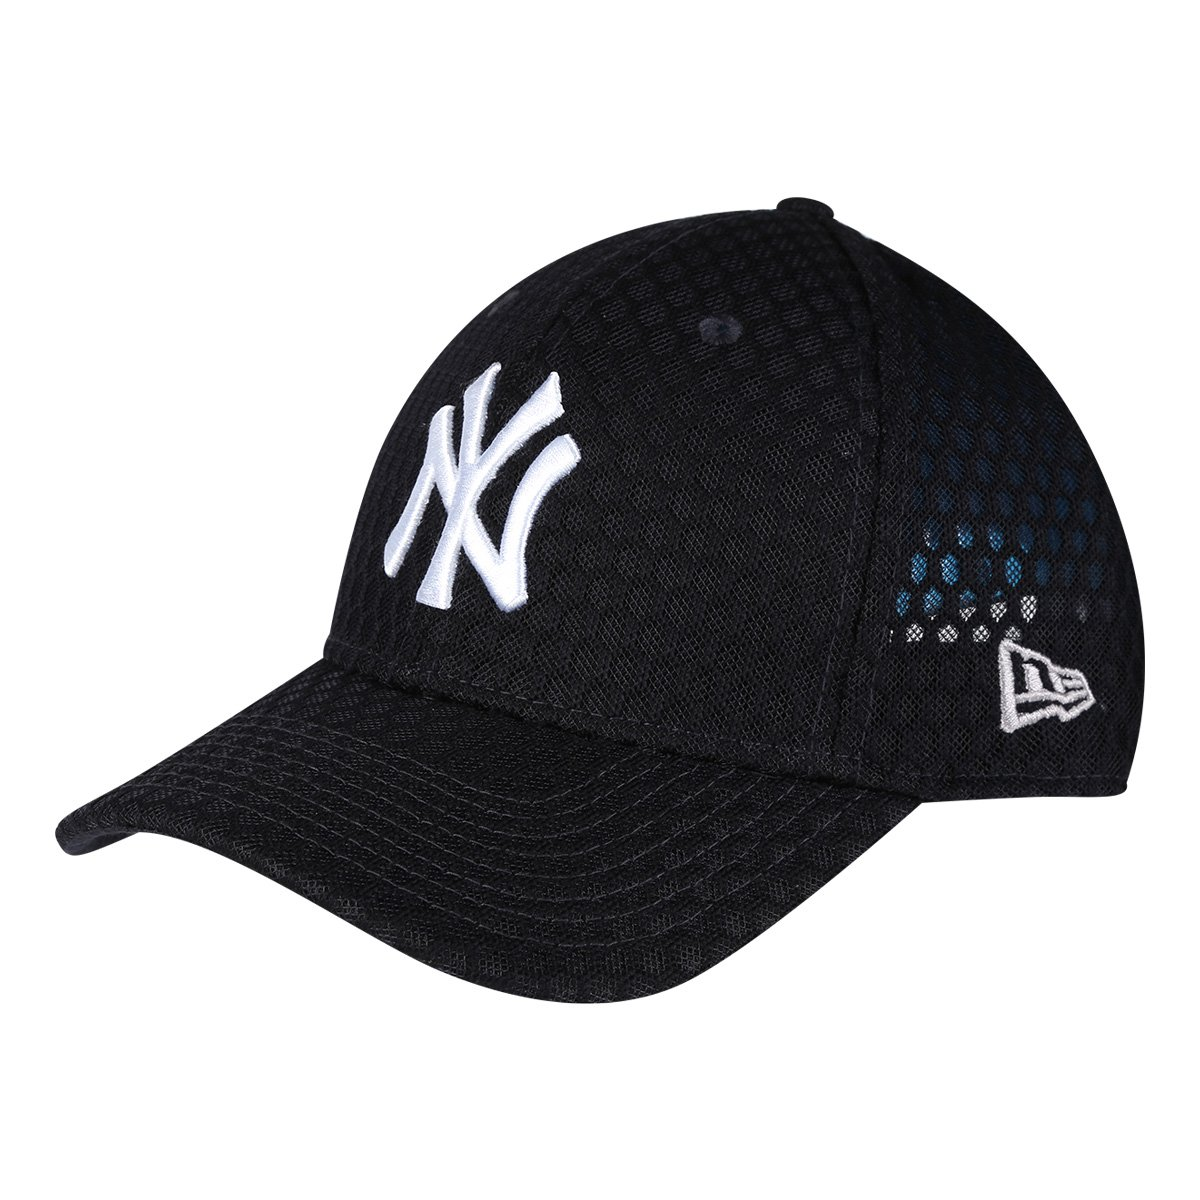 Boné New Era MLB New York Yankees Aba Curva 940 Sn Hc Quickturn - Compre  Agora  322352f5769